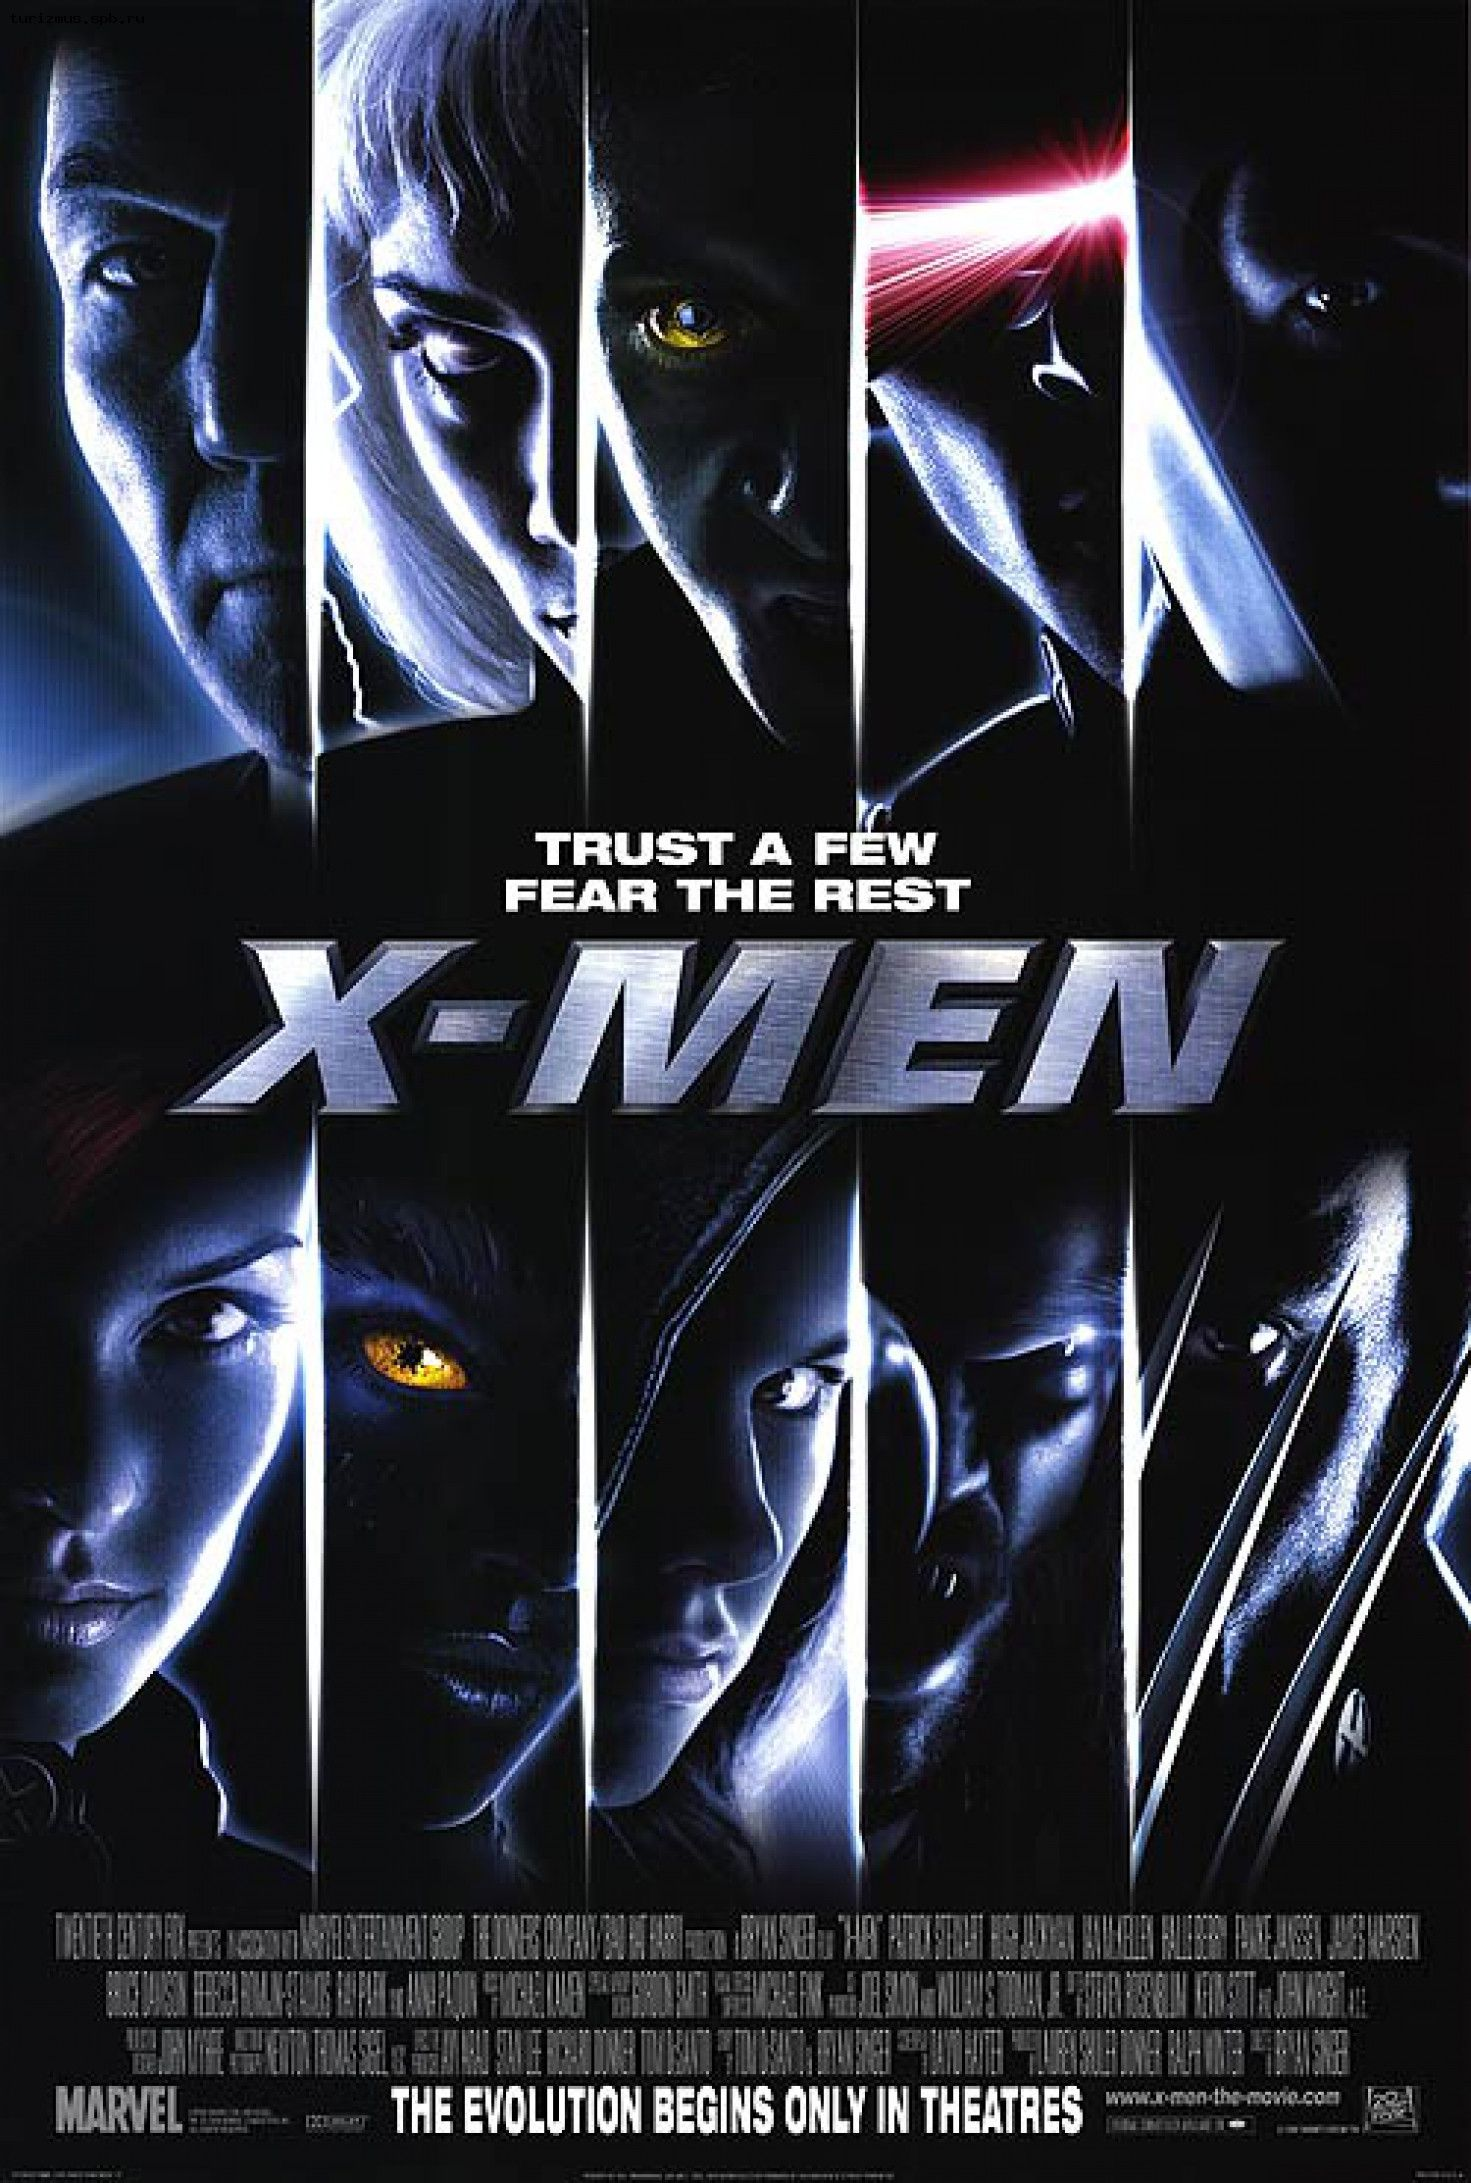 X Men 2000 The One That Started Them All This Movie Is One Of My Go To Films When Nothing Is Scratching My Itch Man Movies Superhero Movies Movie Posters